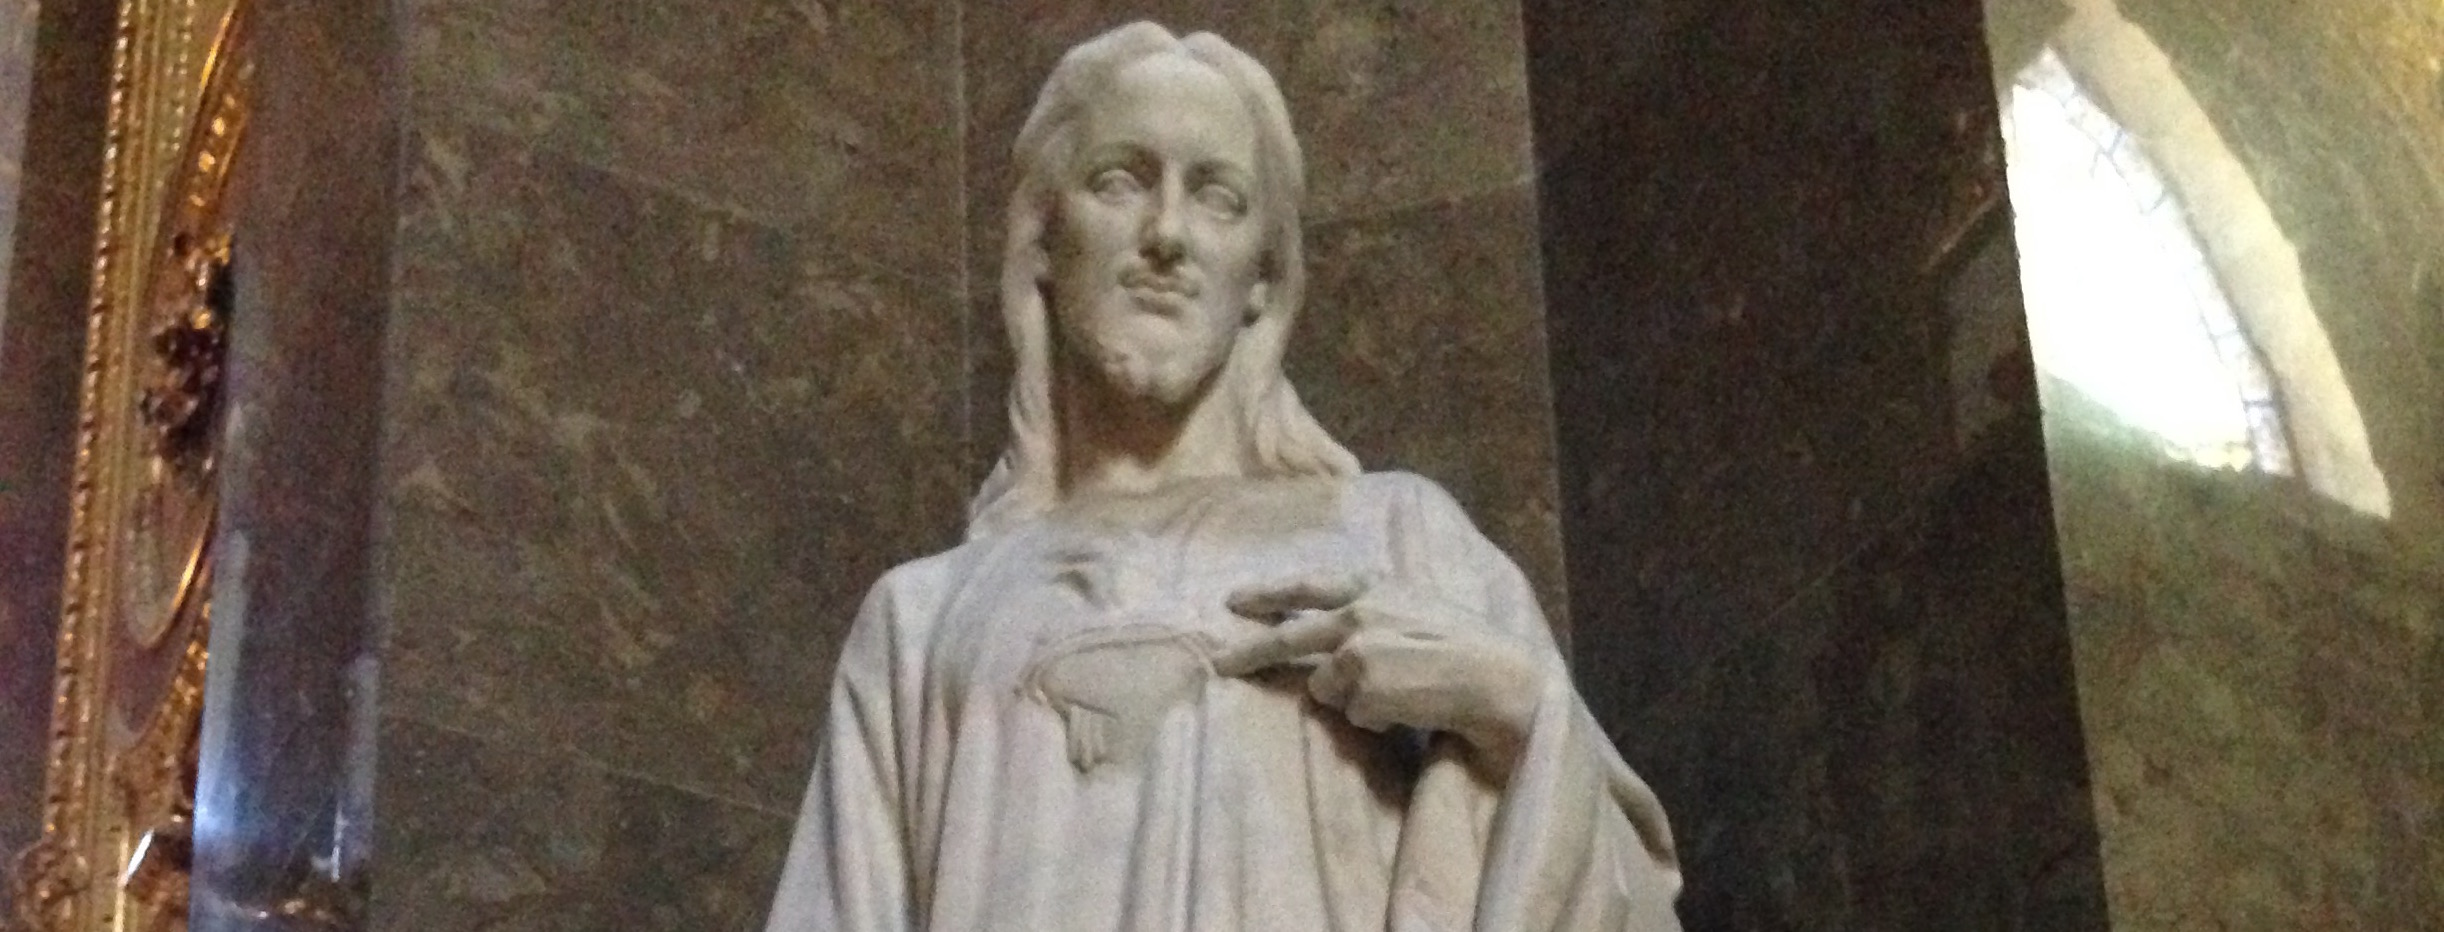 This chill statue of Jesus resides in St. Stephen's Basilica in Budapest.